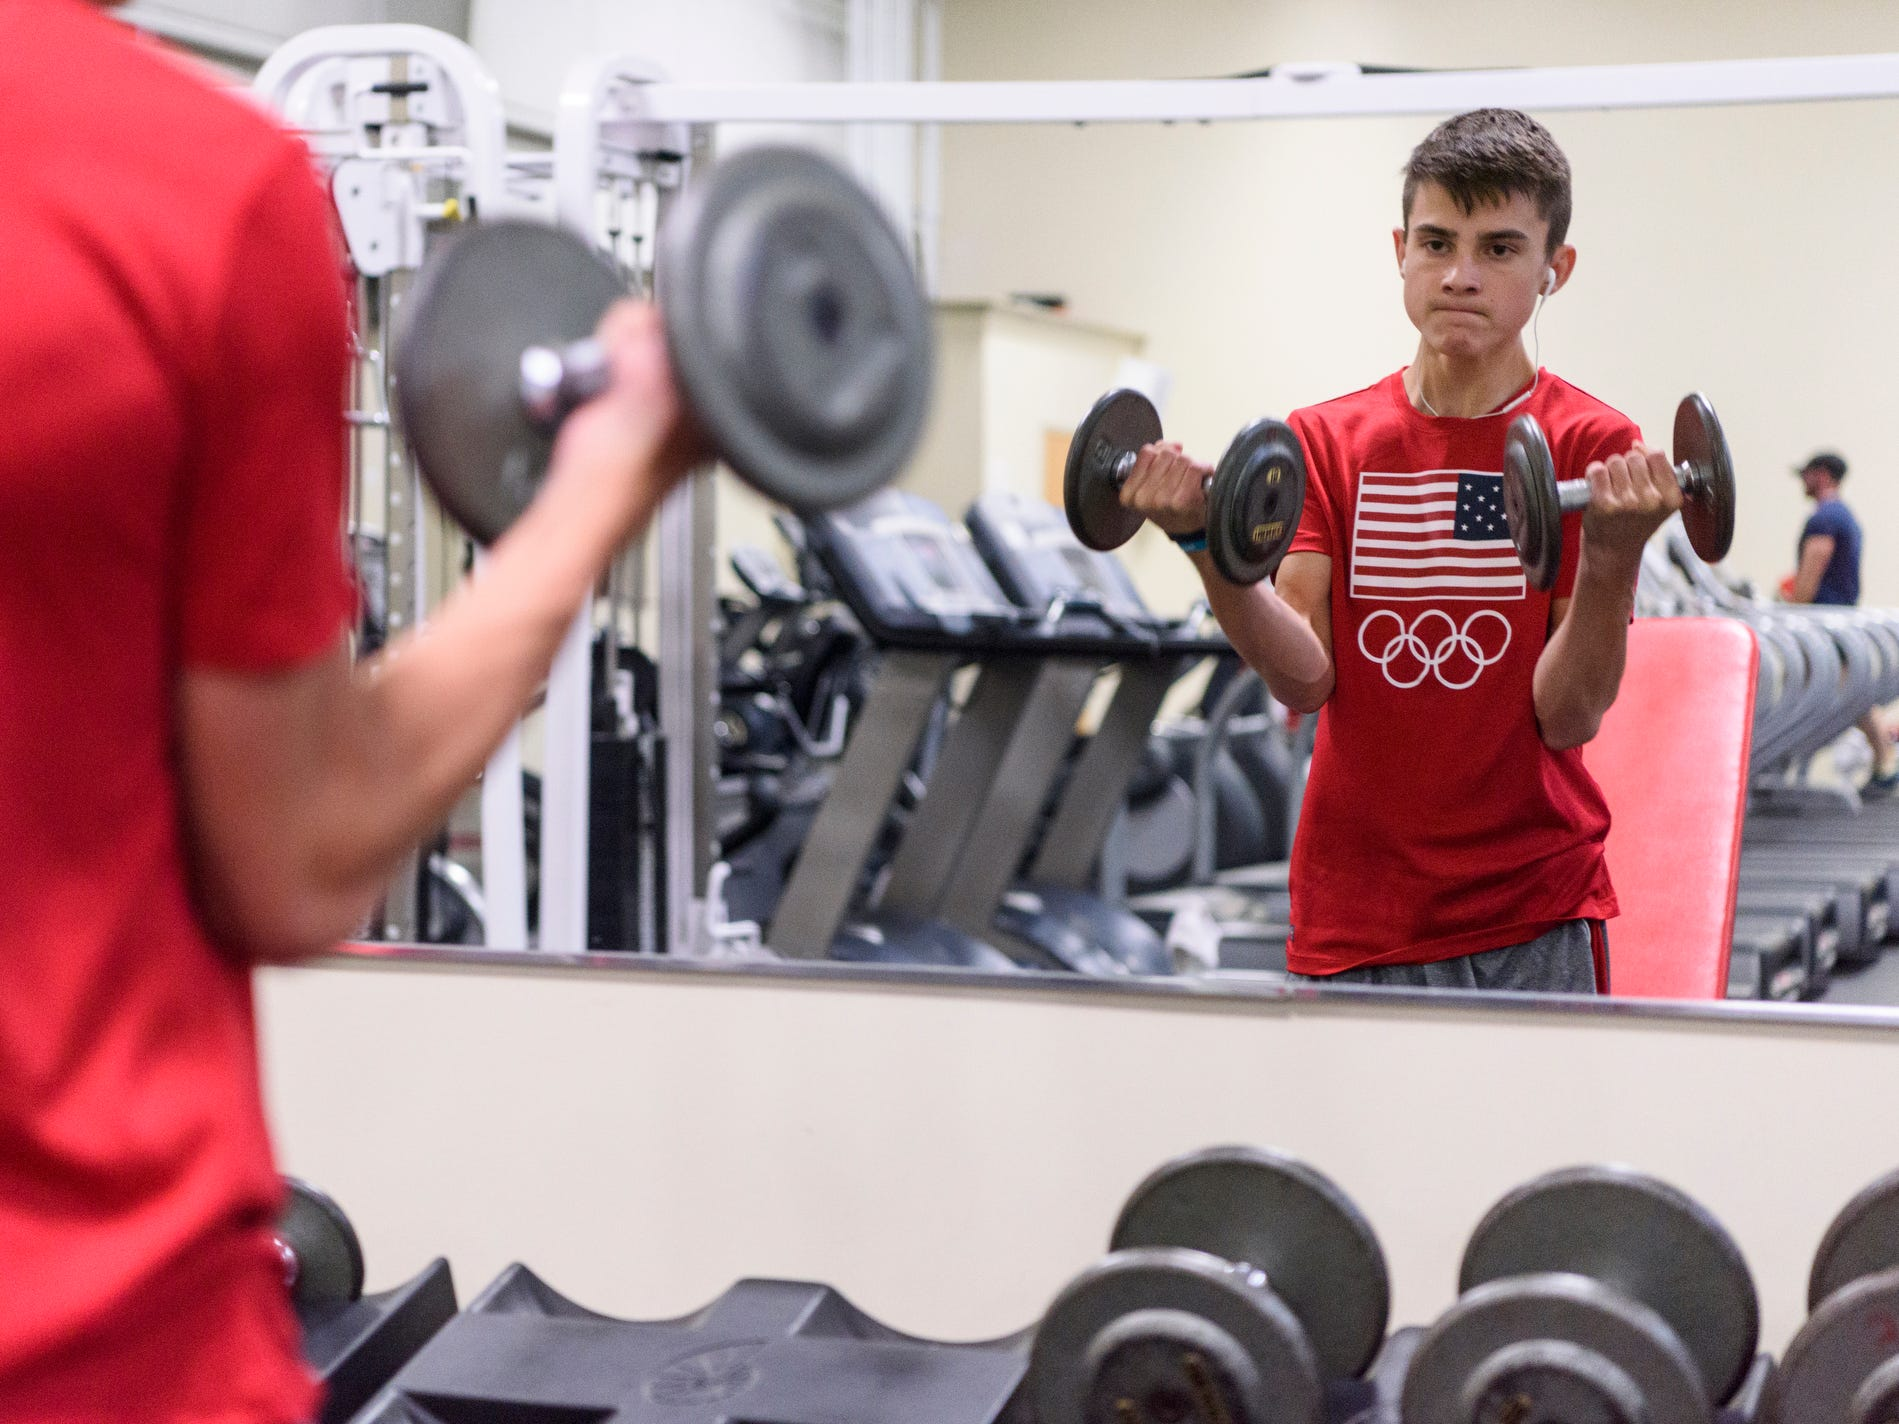 Sam Archuleta works out at Elite Fitness Center in Evansville most week nights to continue building strength. He was diagnosed with a rare degenerative neuromuscular disorder called Friedreich's ataxia (FA) in March.